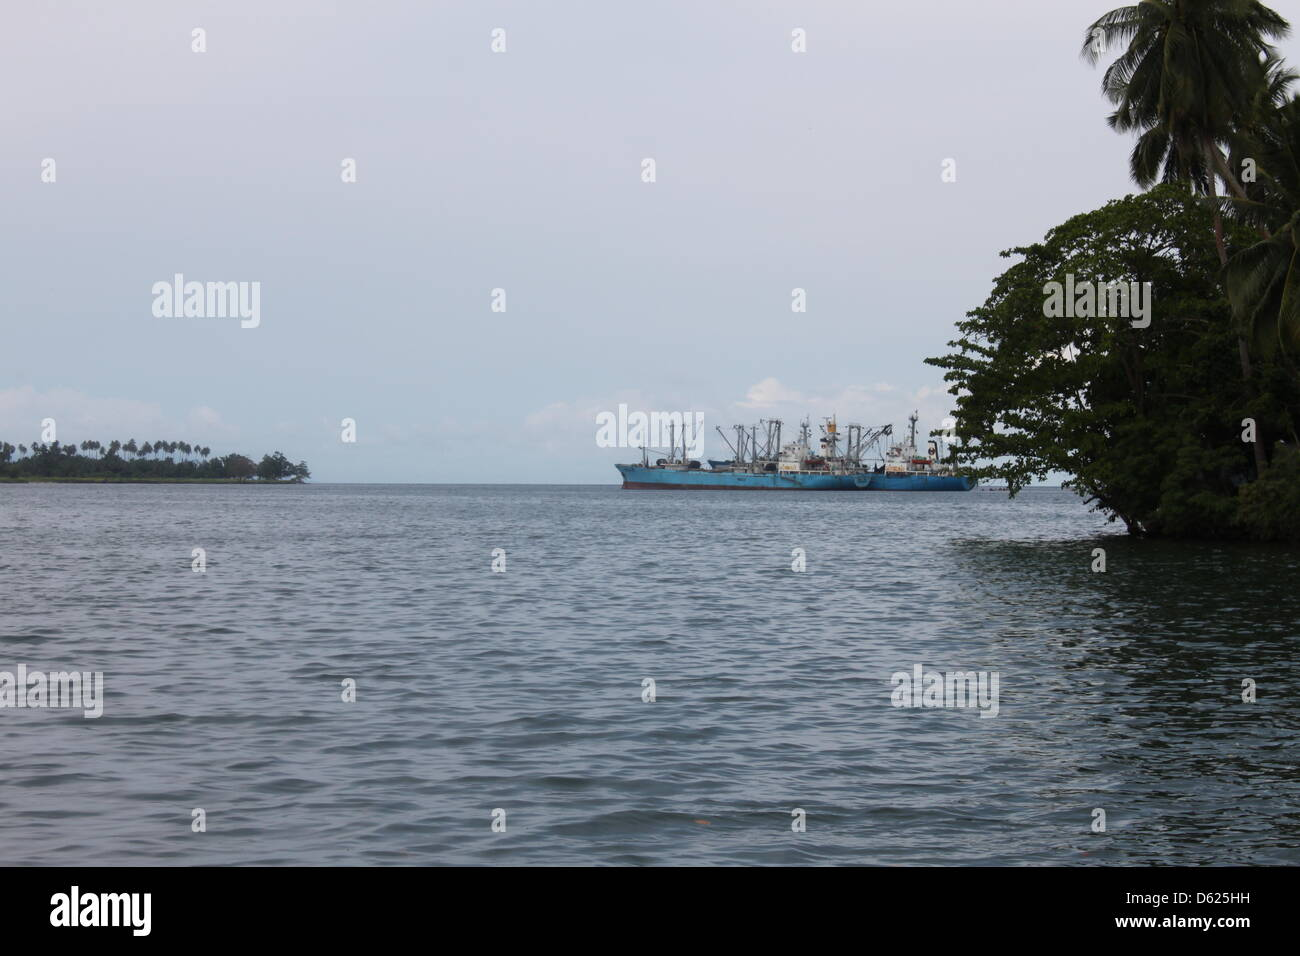 (dpa-file) - A file picture dated 12 October 2011 shows a large ship situated at a bay near Bomlom, Papua New Guinea. - Stock Image